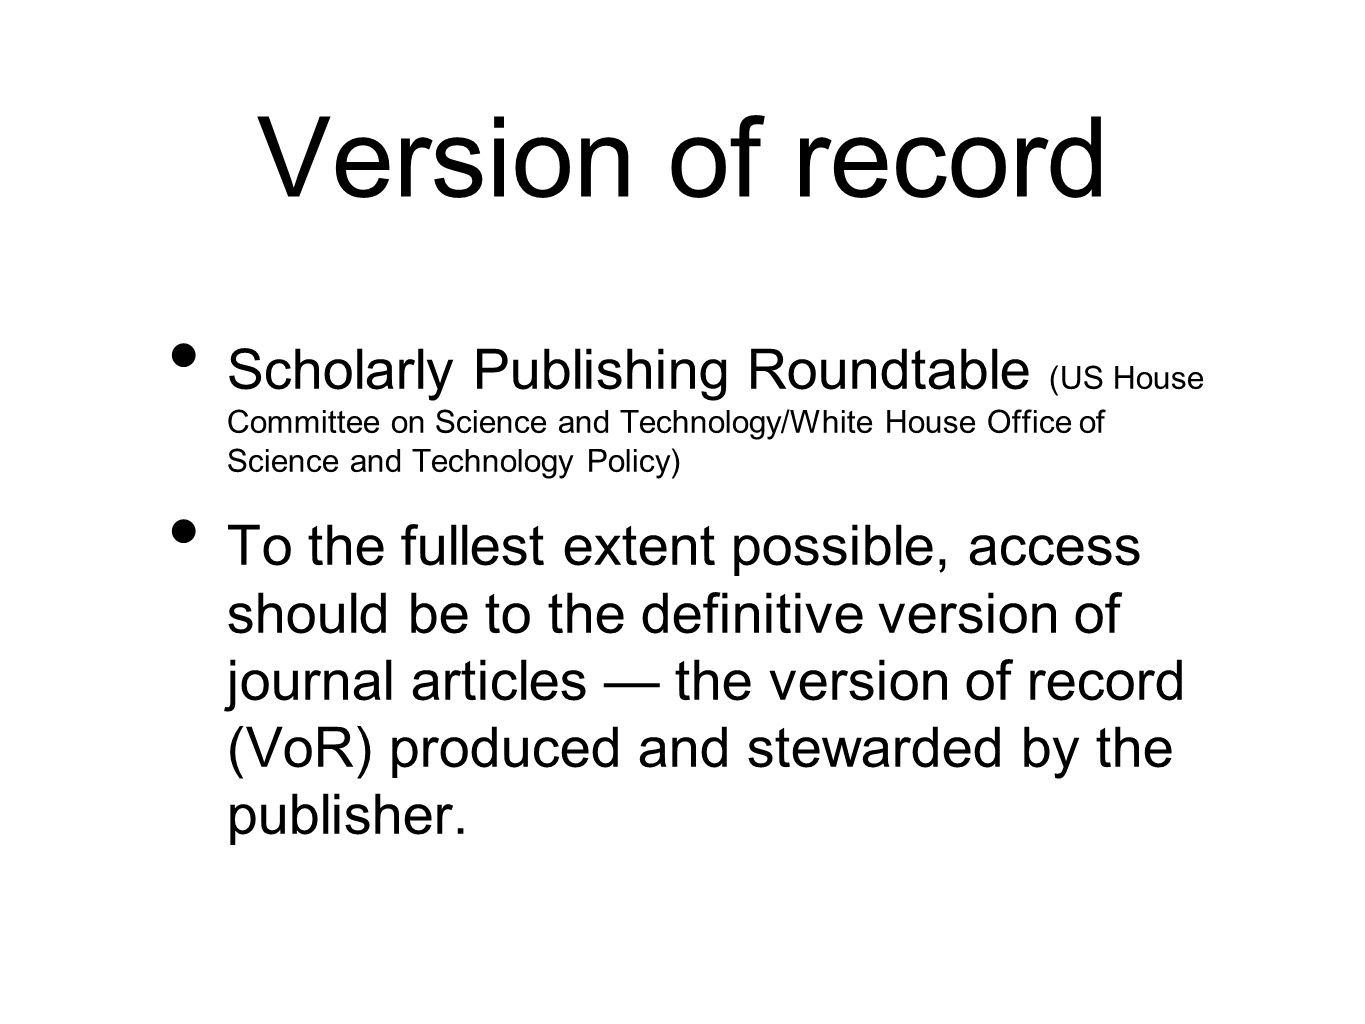 Version of record Scholarly Publishing Roundtable (US House Committee on Science and Technology/White House Office of Science and Technology Policy) To the fullest extent possible, access should be to the definitive version of journal articles the version of record (VoR) produced and stewarded by the publisher.